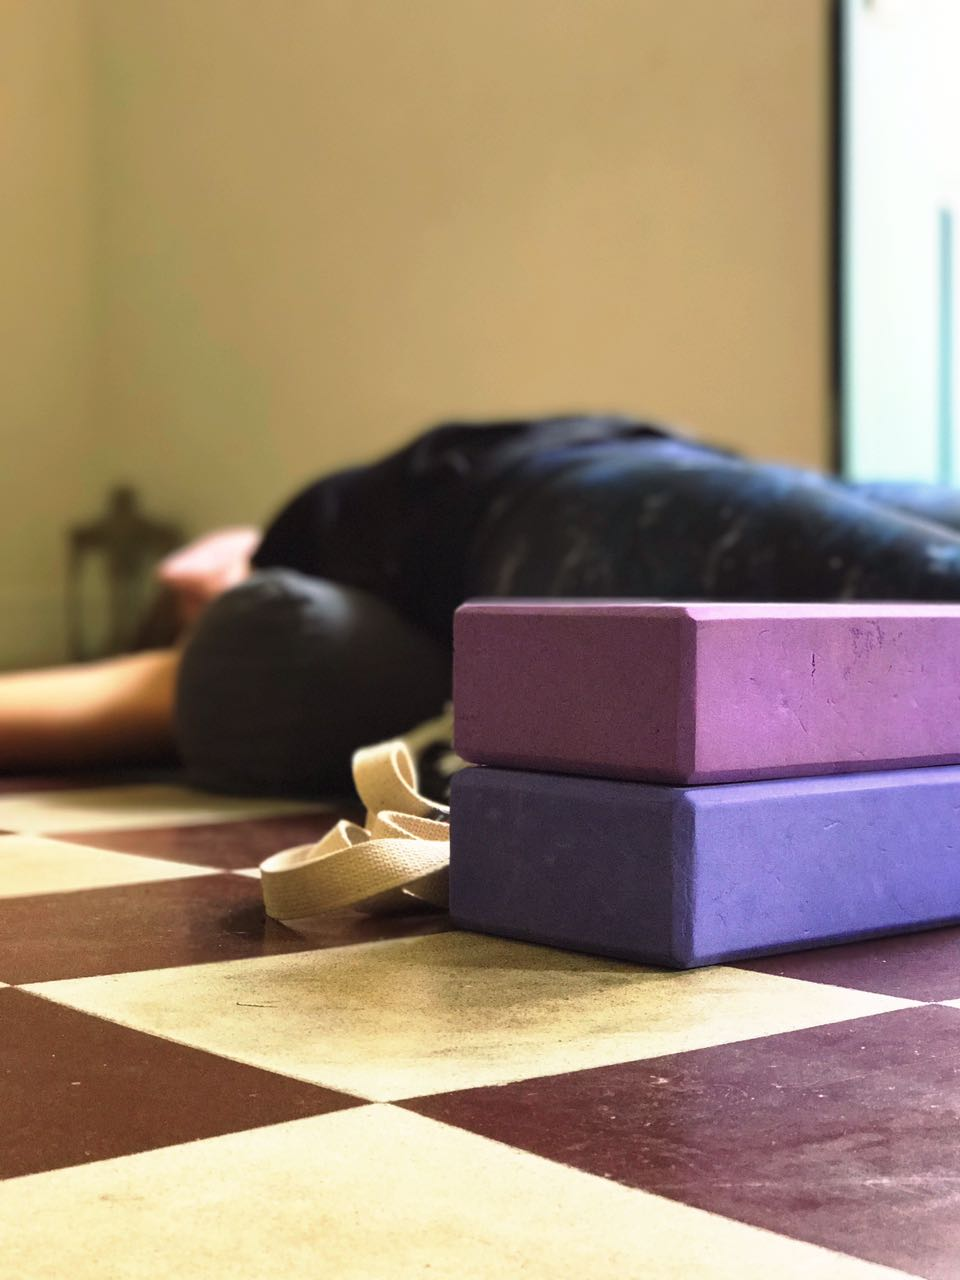 Restorative Yoga. Class every Monday at 7:15 pm. Casco Yoga Panama. Casco Viejo, Panama City, Panama